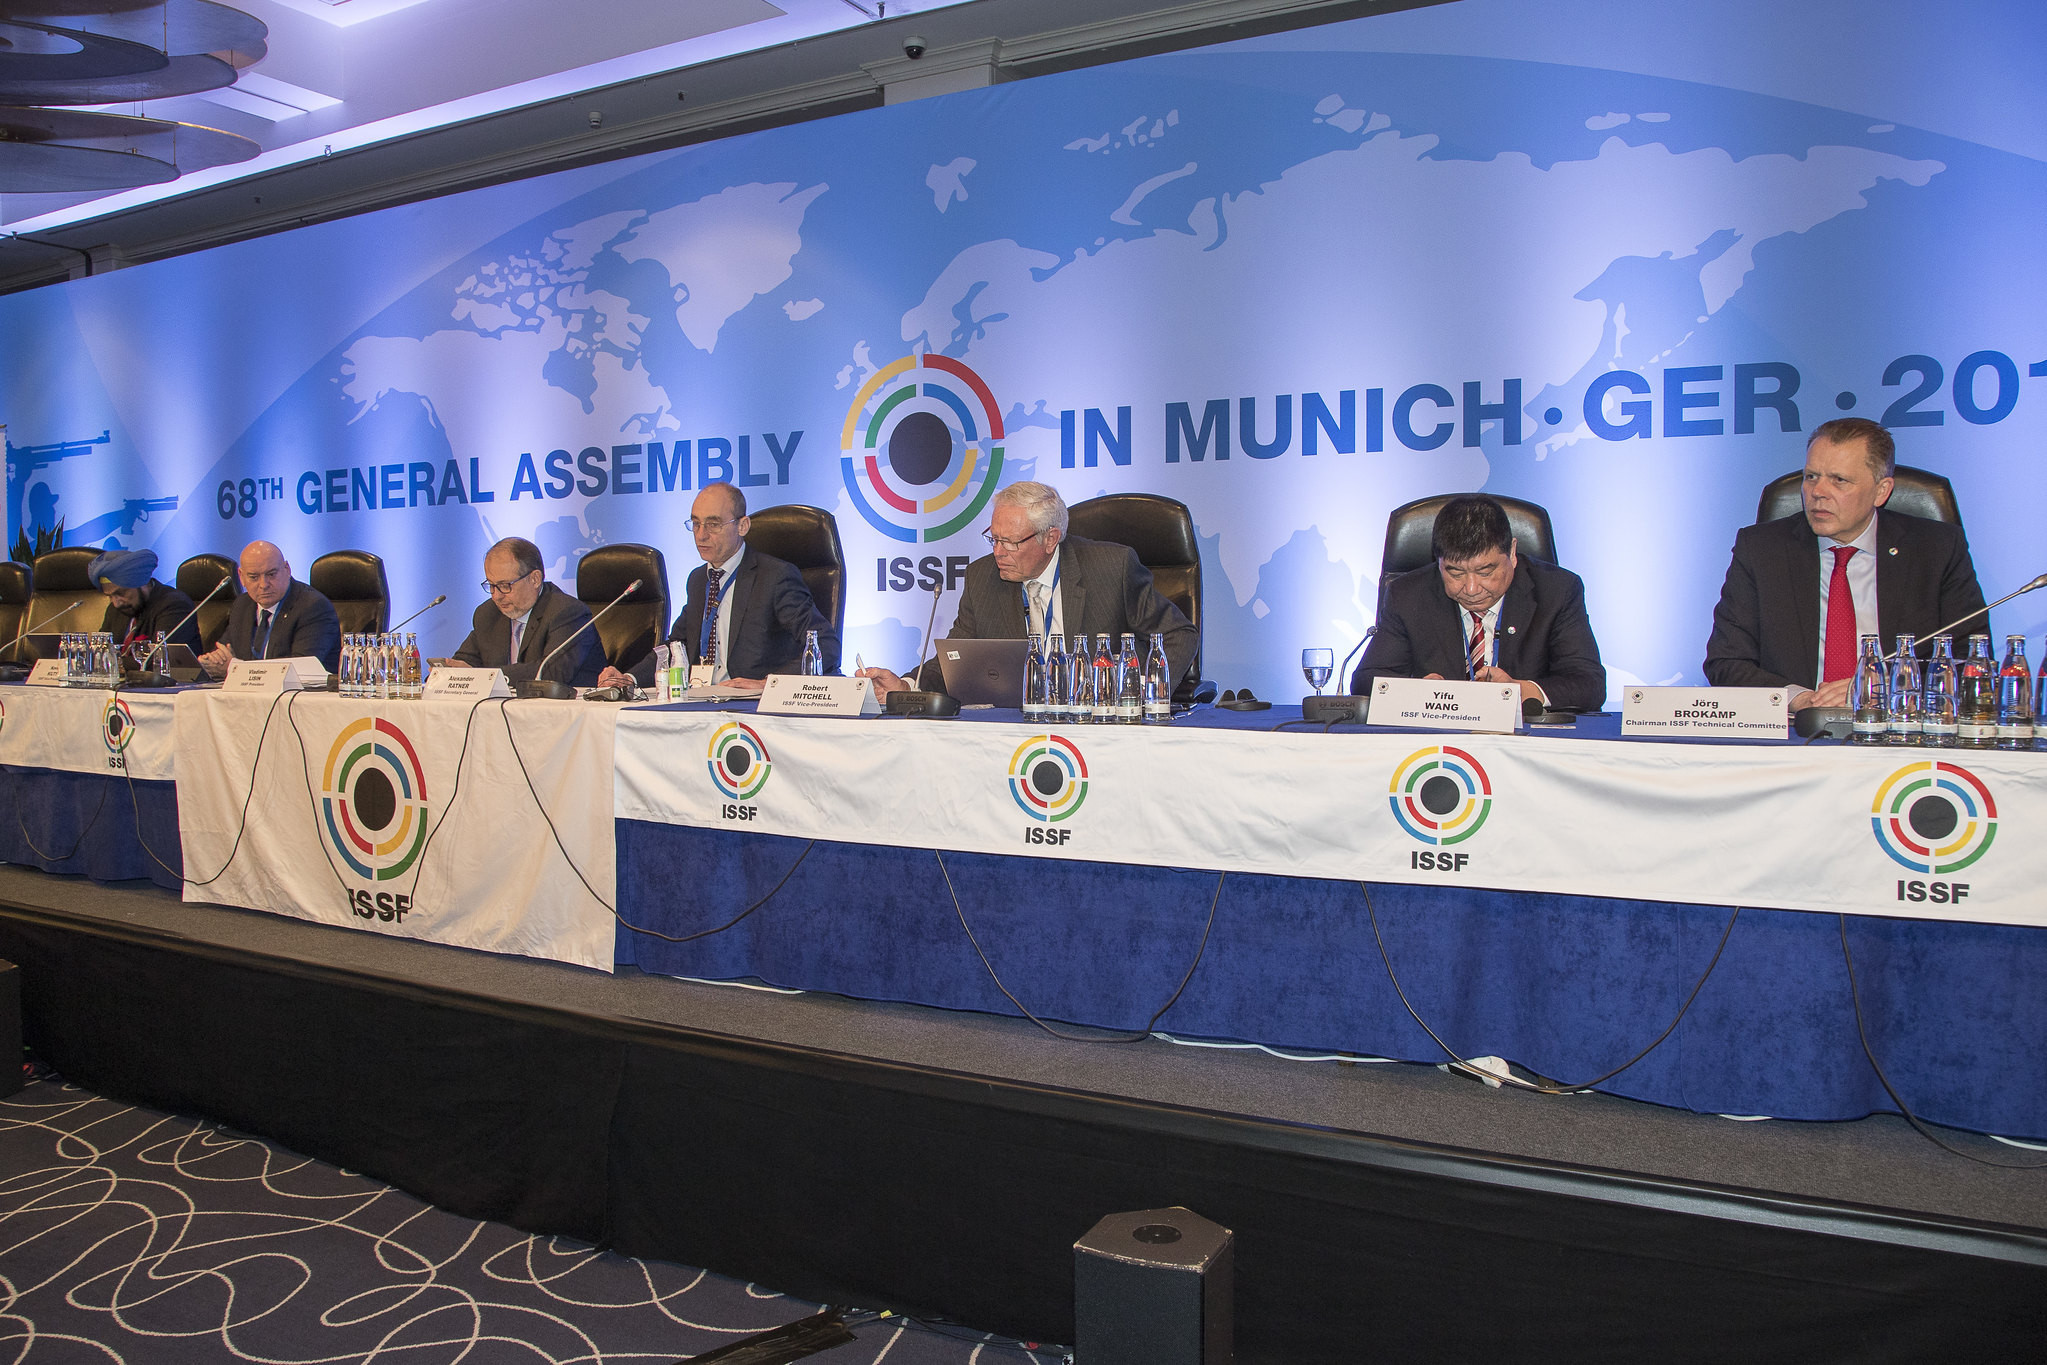 Luciano Rossi is challenging the result of the vote at the ISSF General Assembly in Munich ©ISSF